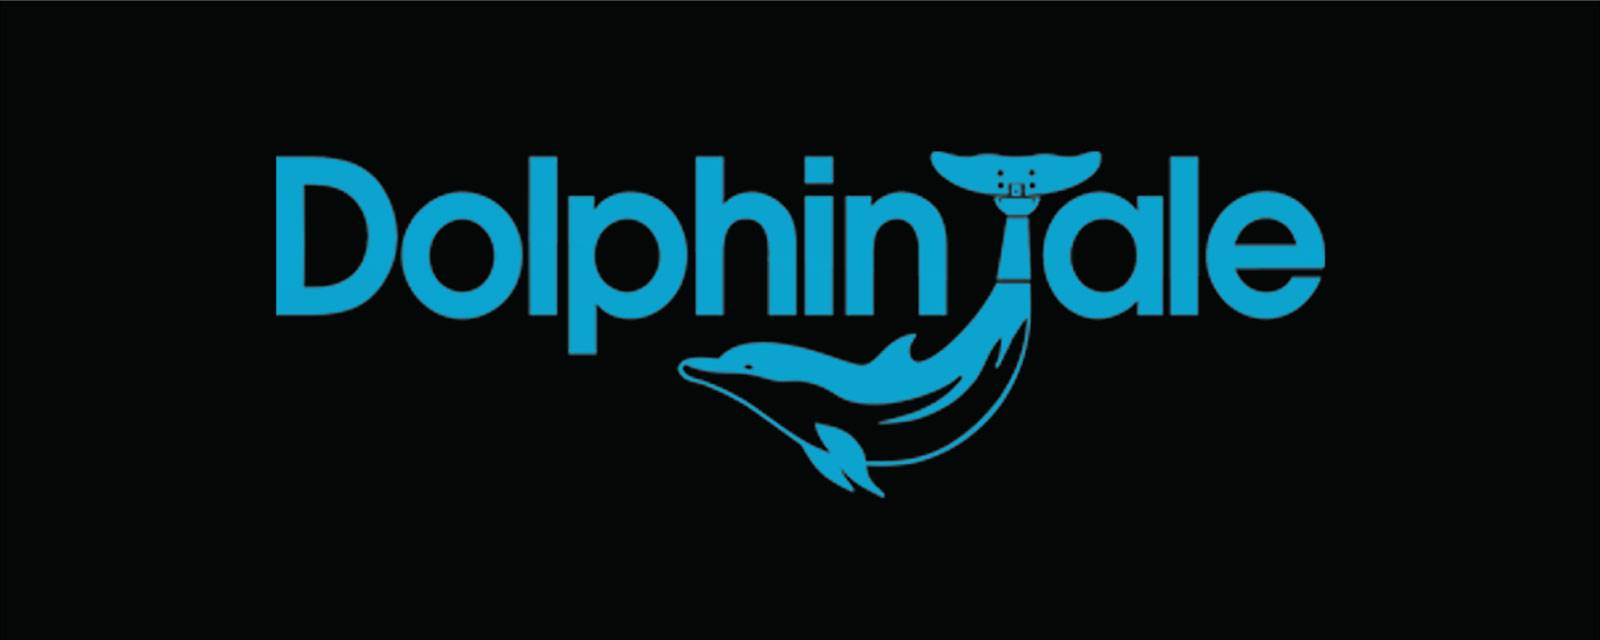 Dolphn Tale